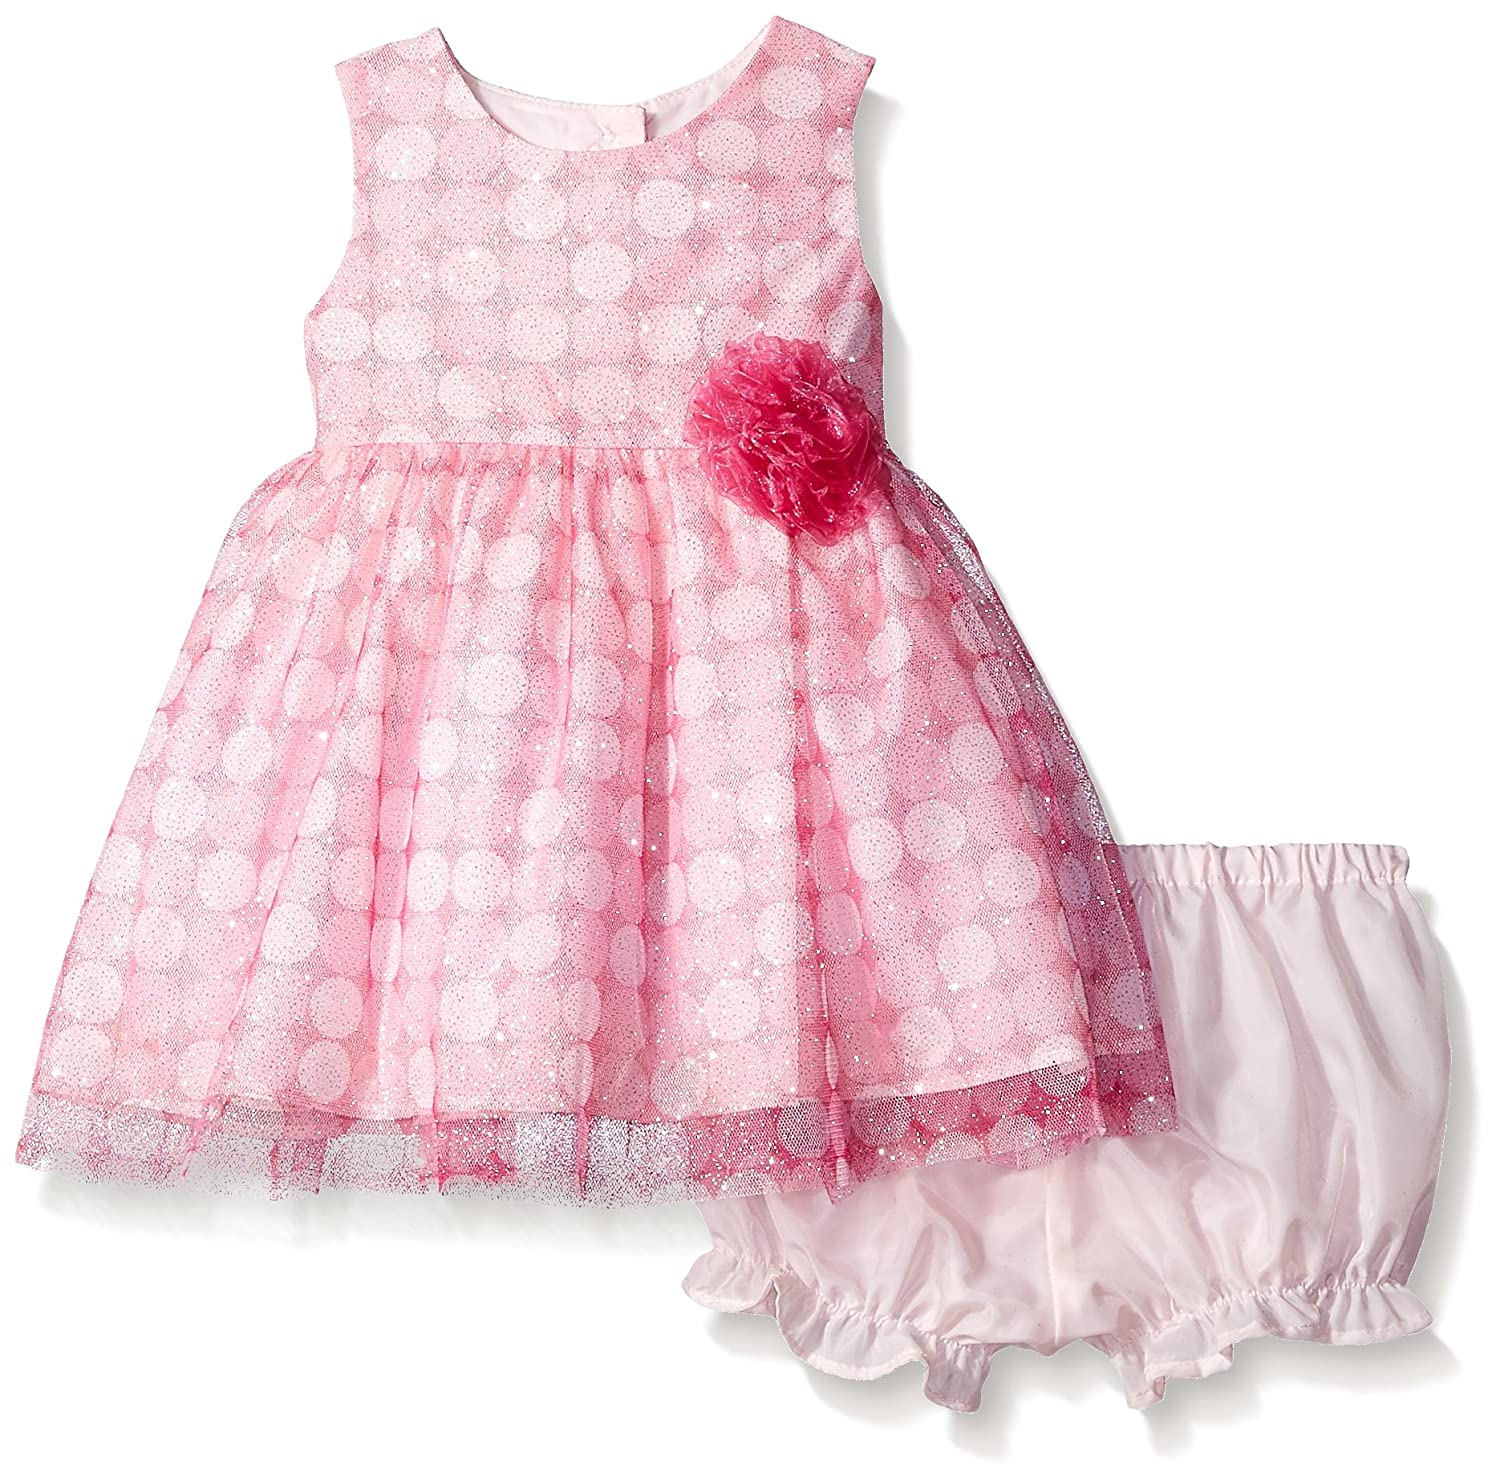 Amazon Marmellata Baby Girls Sparkle Party Dress with Lace